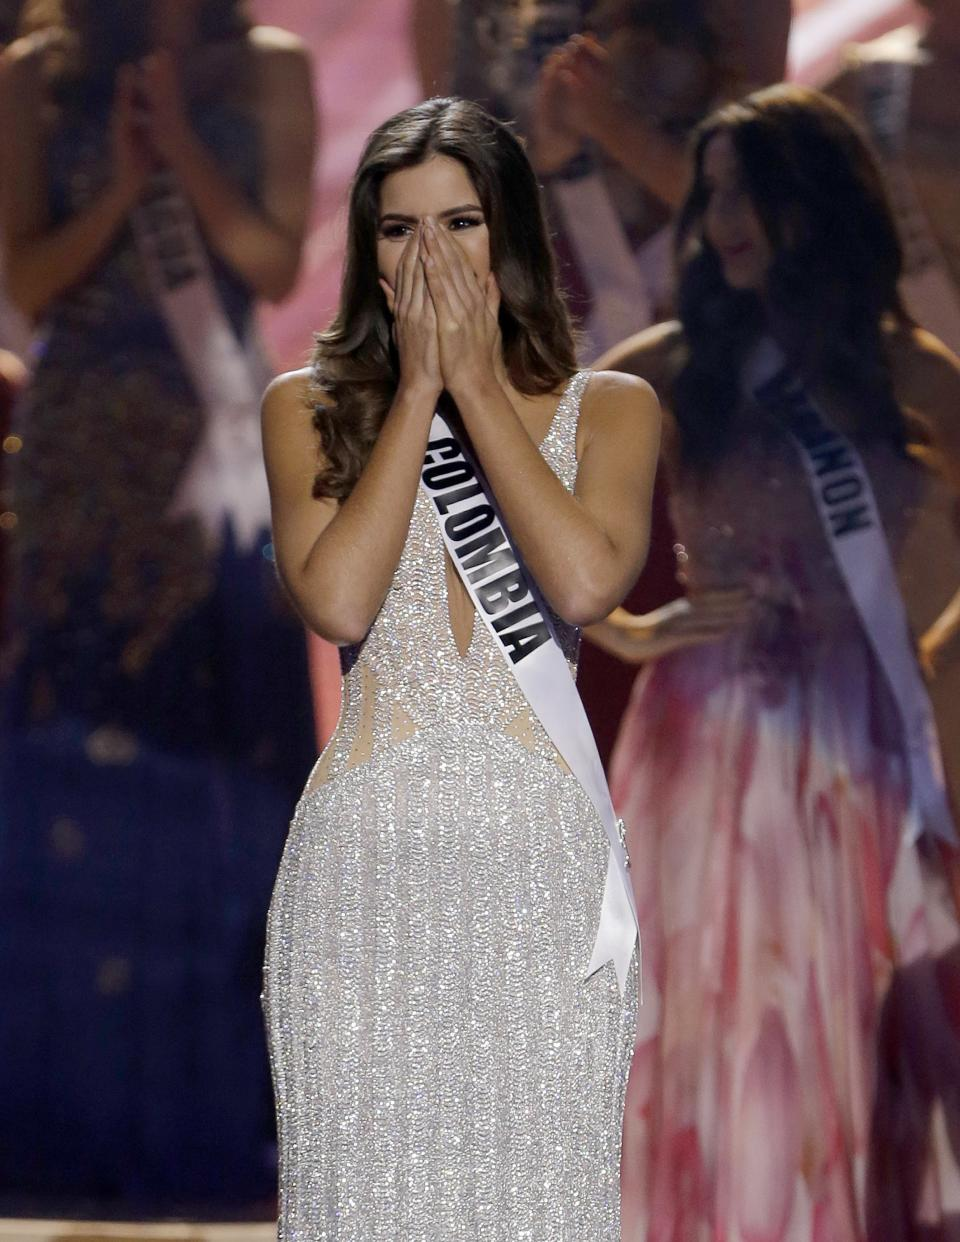 ♔ MISS UNIVERSE® 2014 - Official Thread- Paulina Vega - Colombia ♔ - Page 2 D2798a4a30144c046c0f6a706700c01d